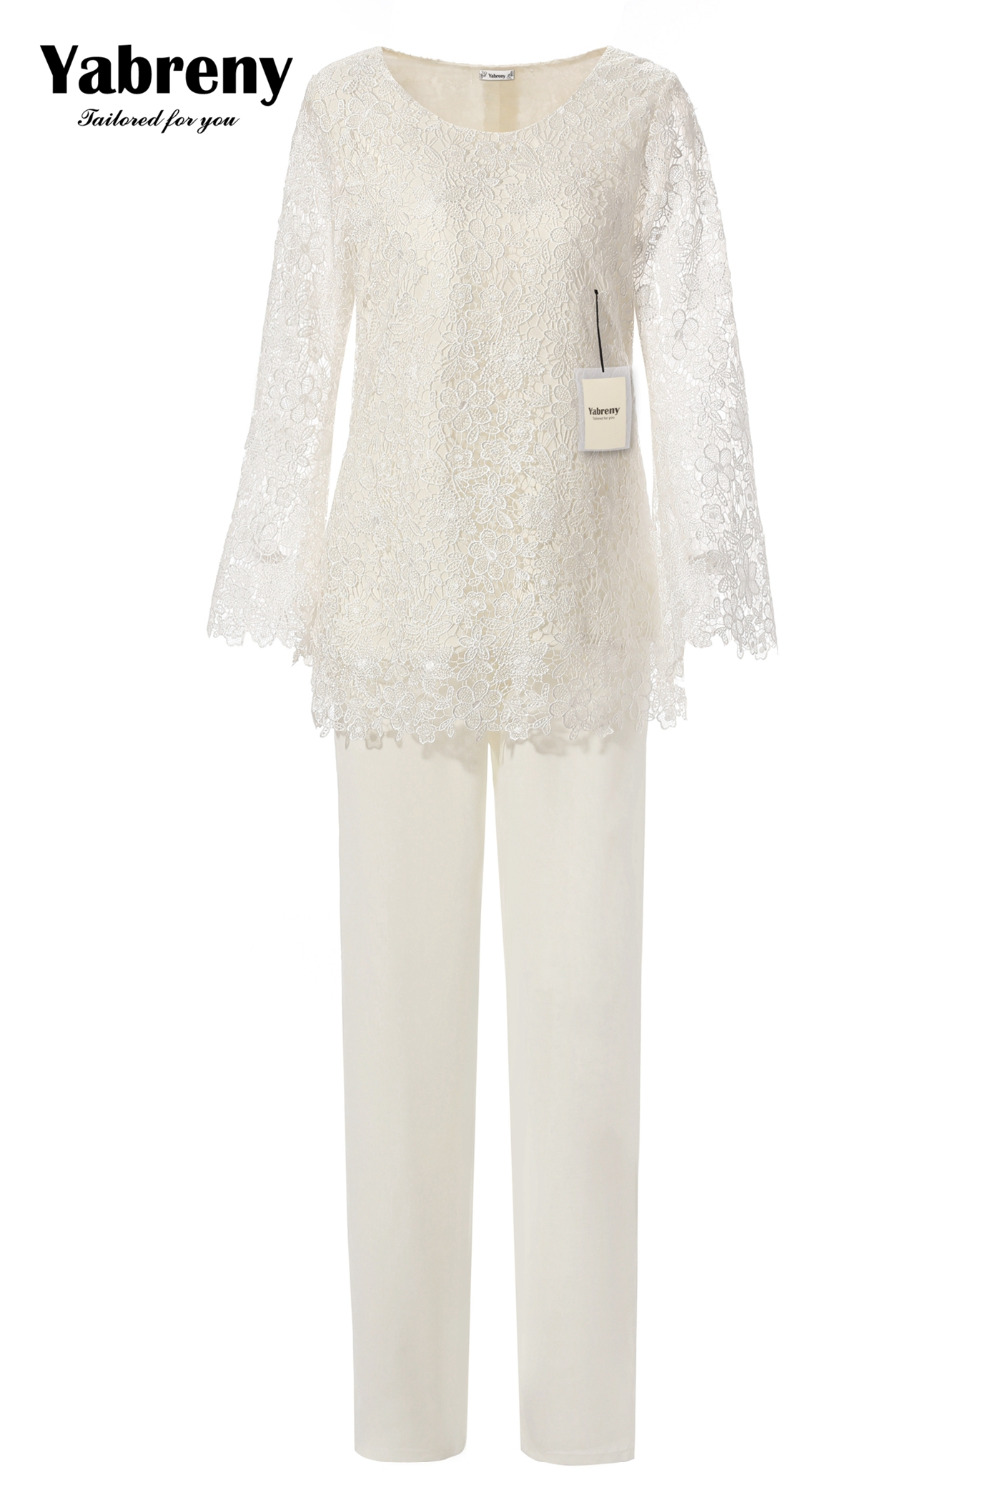 Yabreny Elegant Ivory Lace Pantsuit For Mother Of Bride 2PC Outfit MT0017010